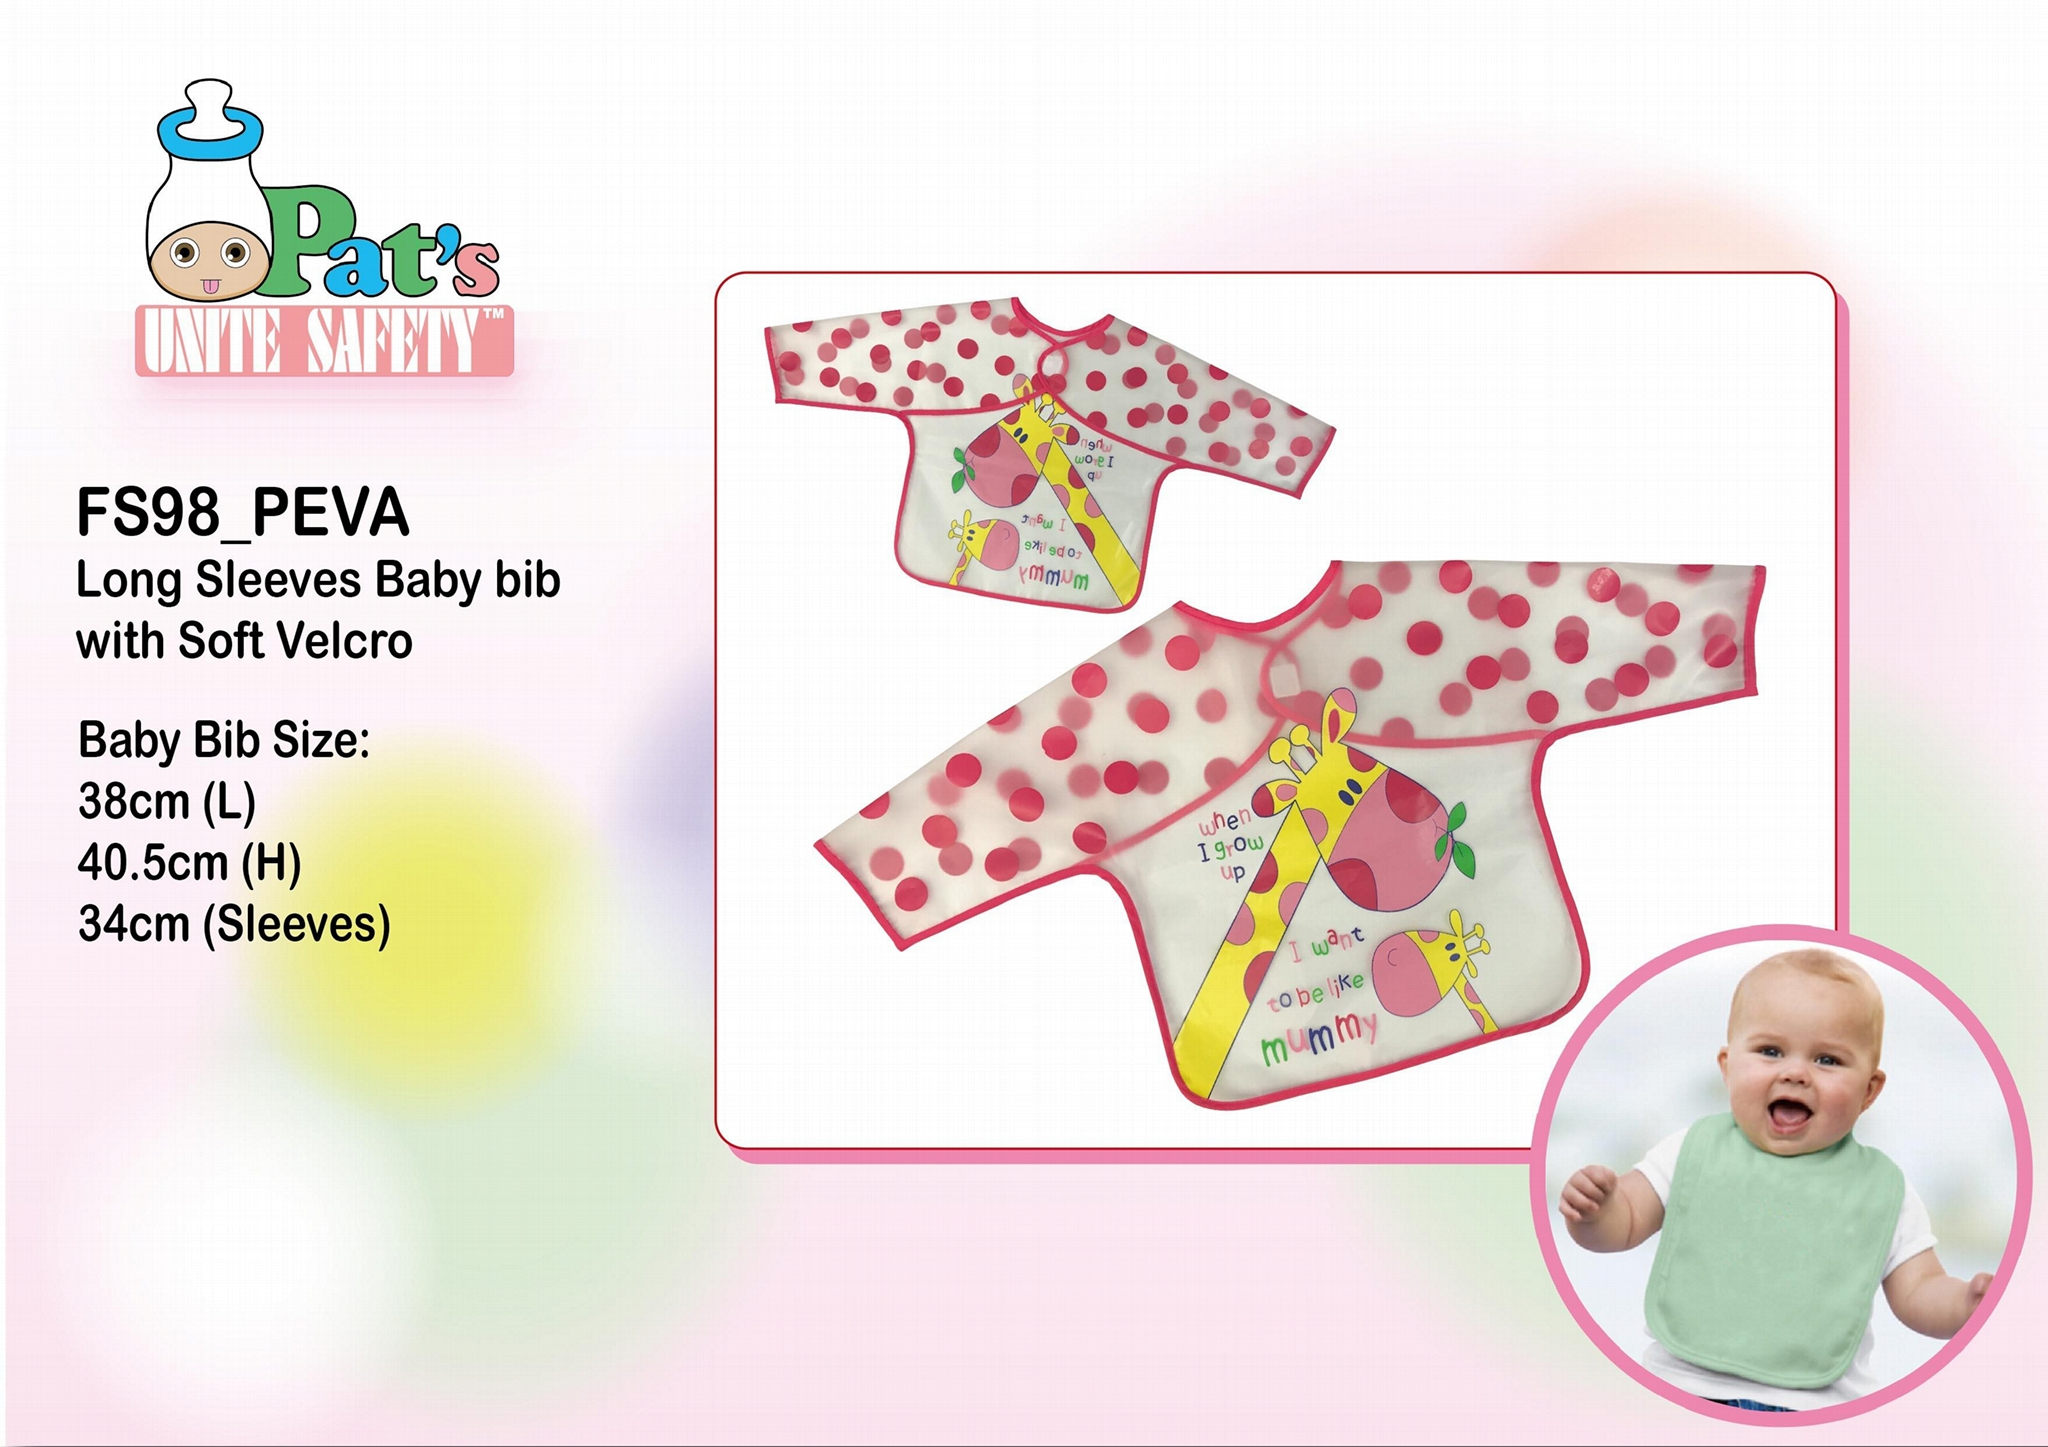 Long Sleeves Baby Bib with Soft Velcro